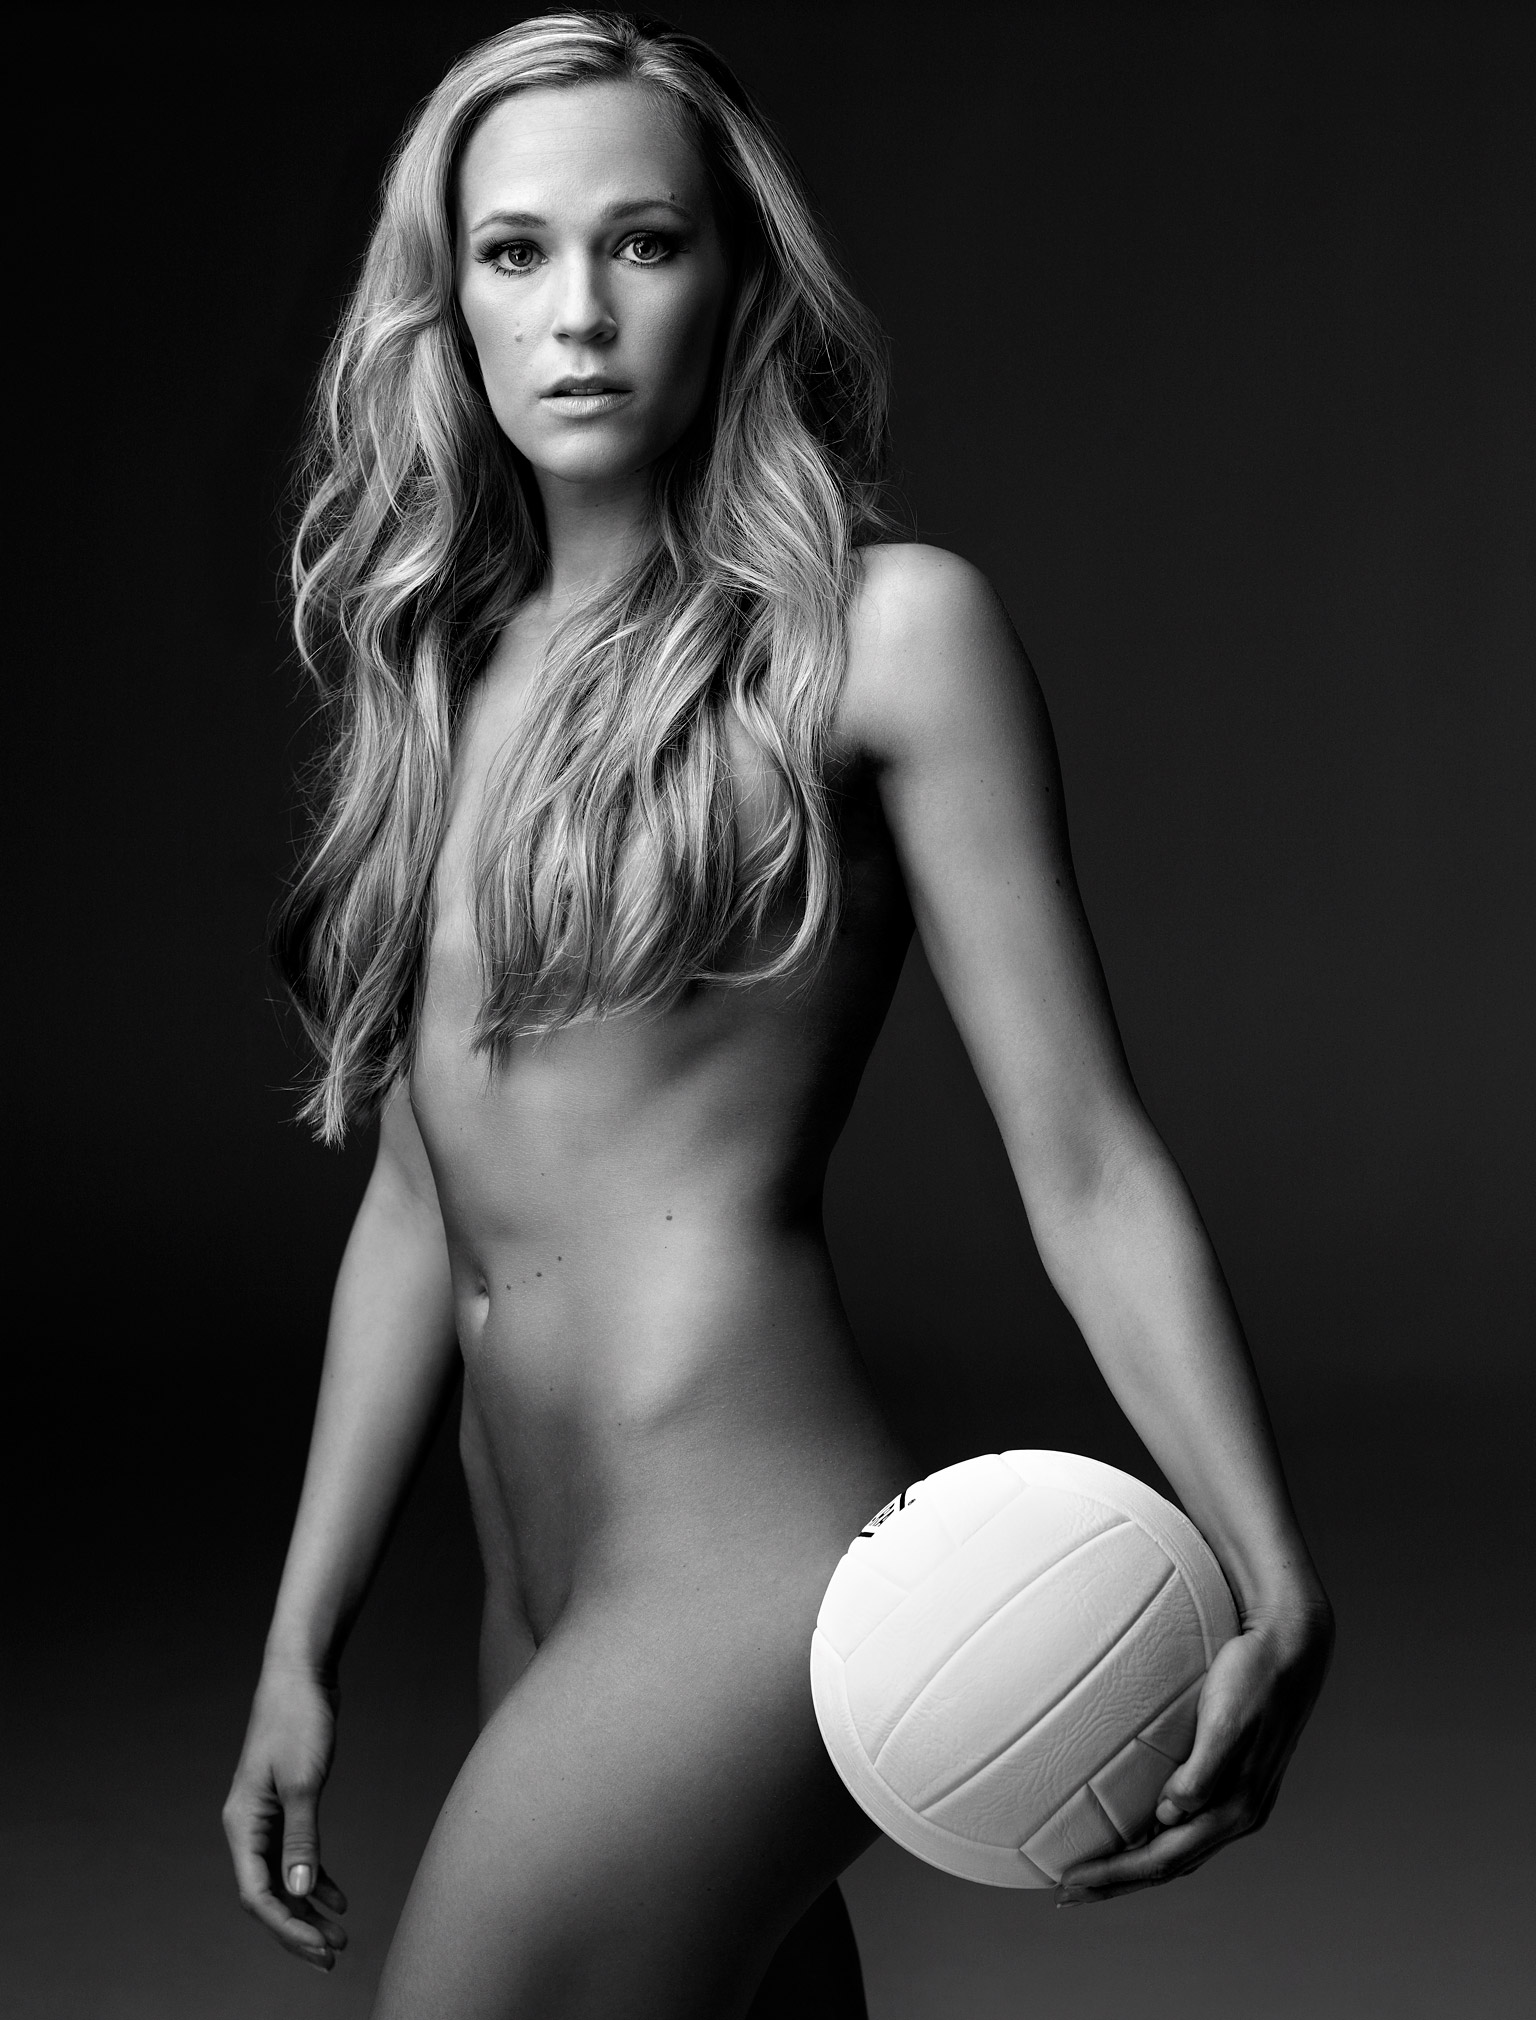 hot nude female volleyball